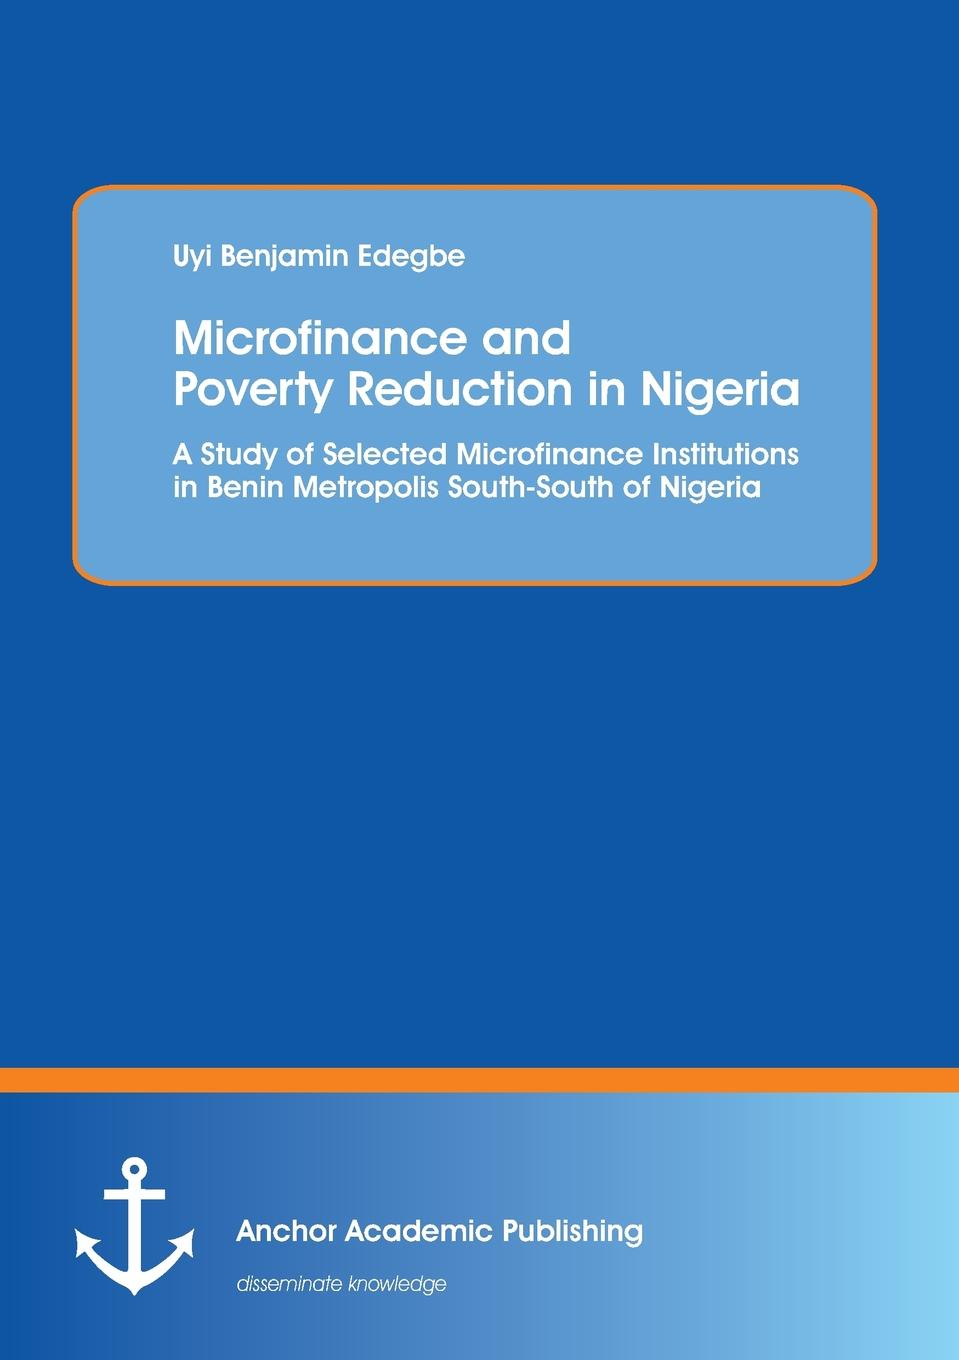 Uyi Benjamin Edegbe Microfinance and Poverty Reduction. An Empirical Evidence from Benin Metropolis South-South of Nigeria mary goretty oyella basic education poverty reduction and the realisation of equality in northern uganda